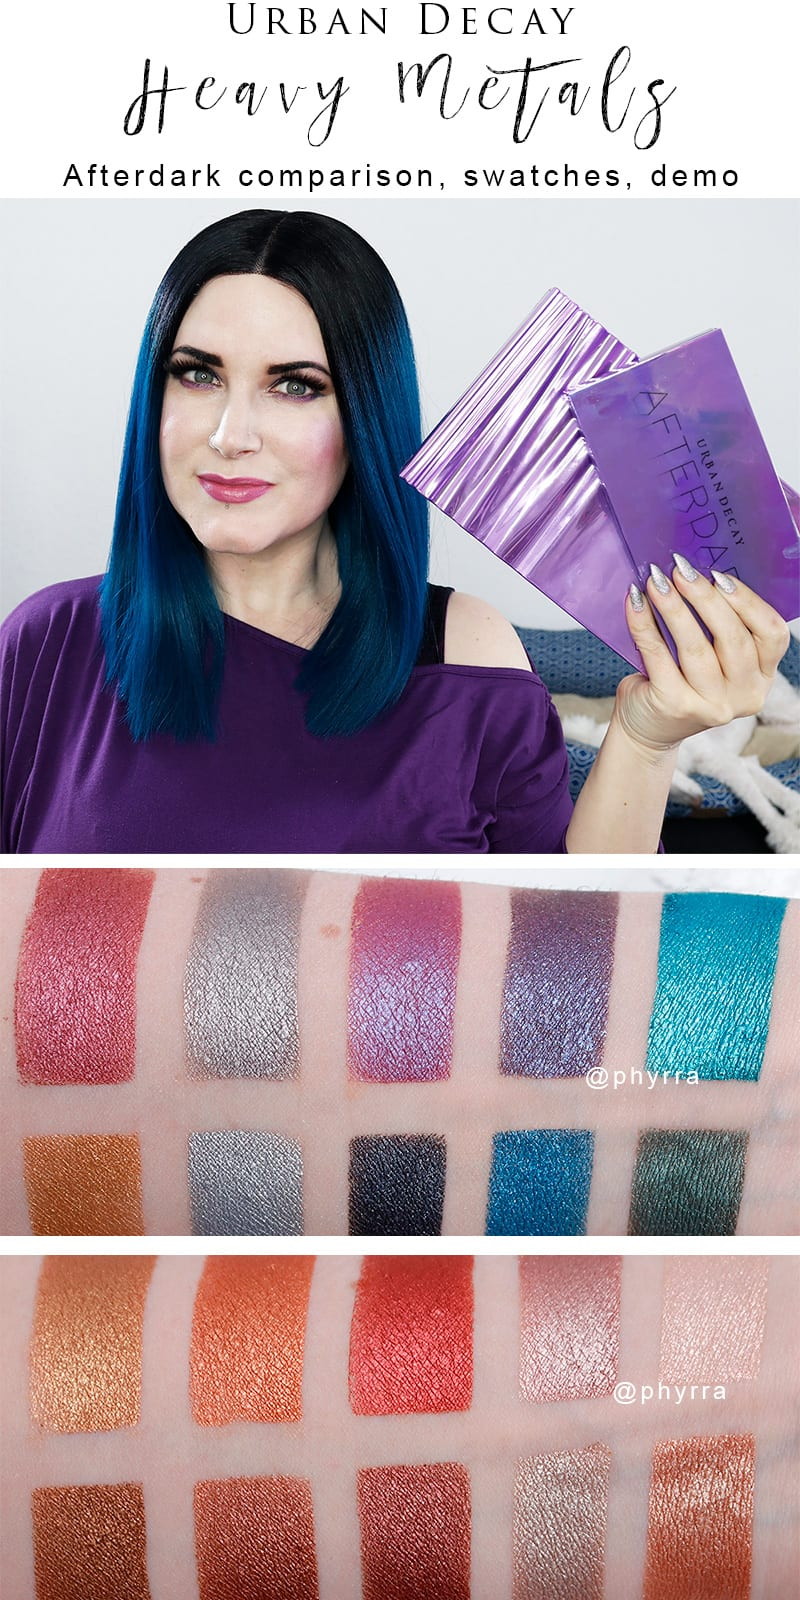 Urban Decay Heavy Metals Palette - I've got my Urban Decay Heavy Metals Palette review, Afterdark comparison, makeup tutorial and video to share with you today!